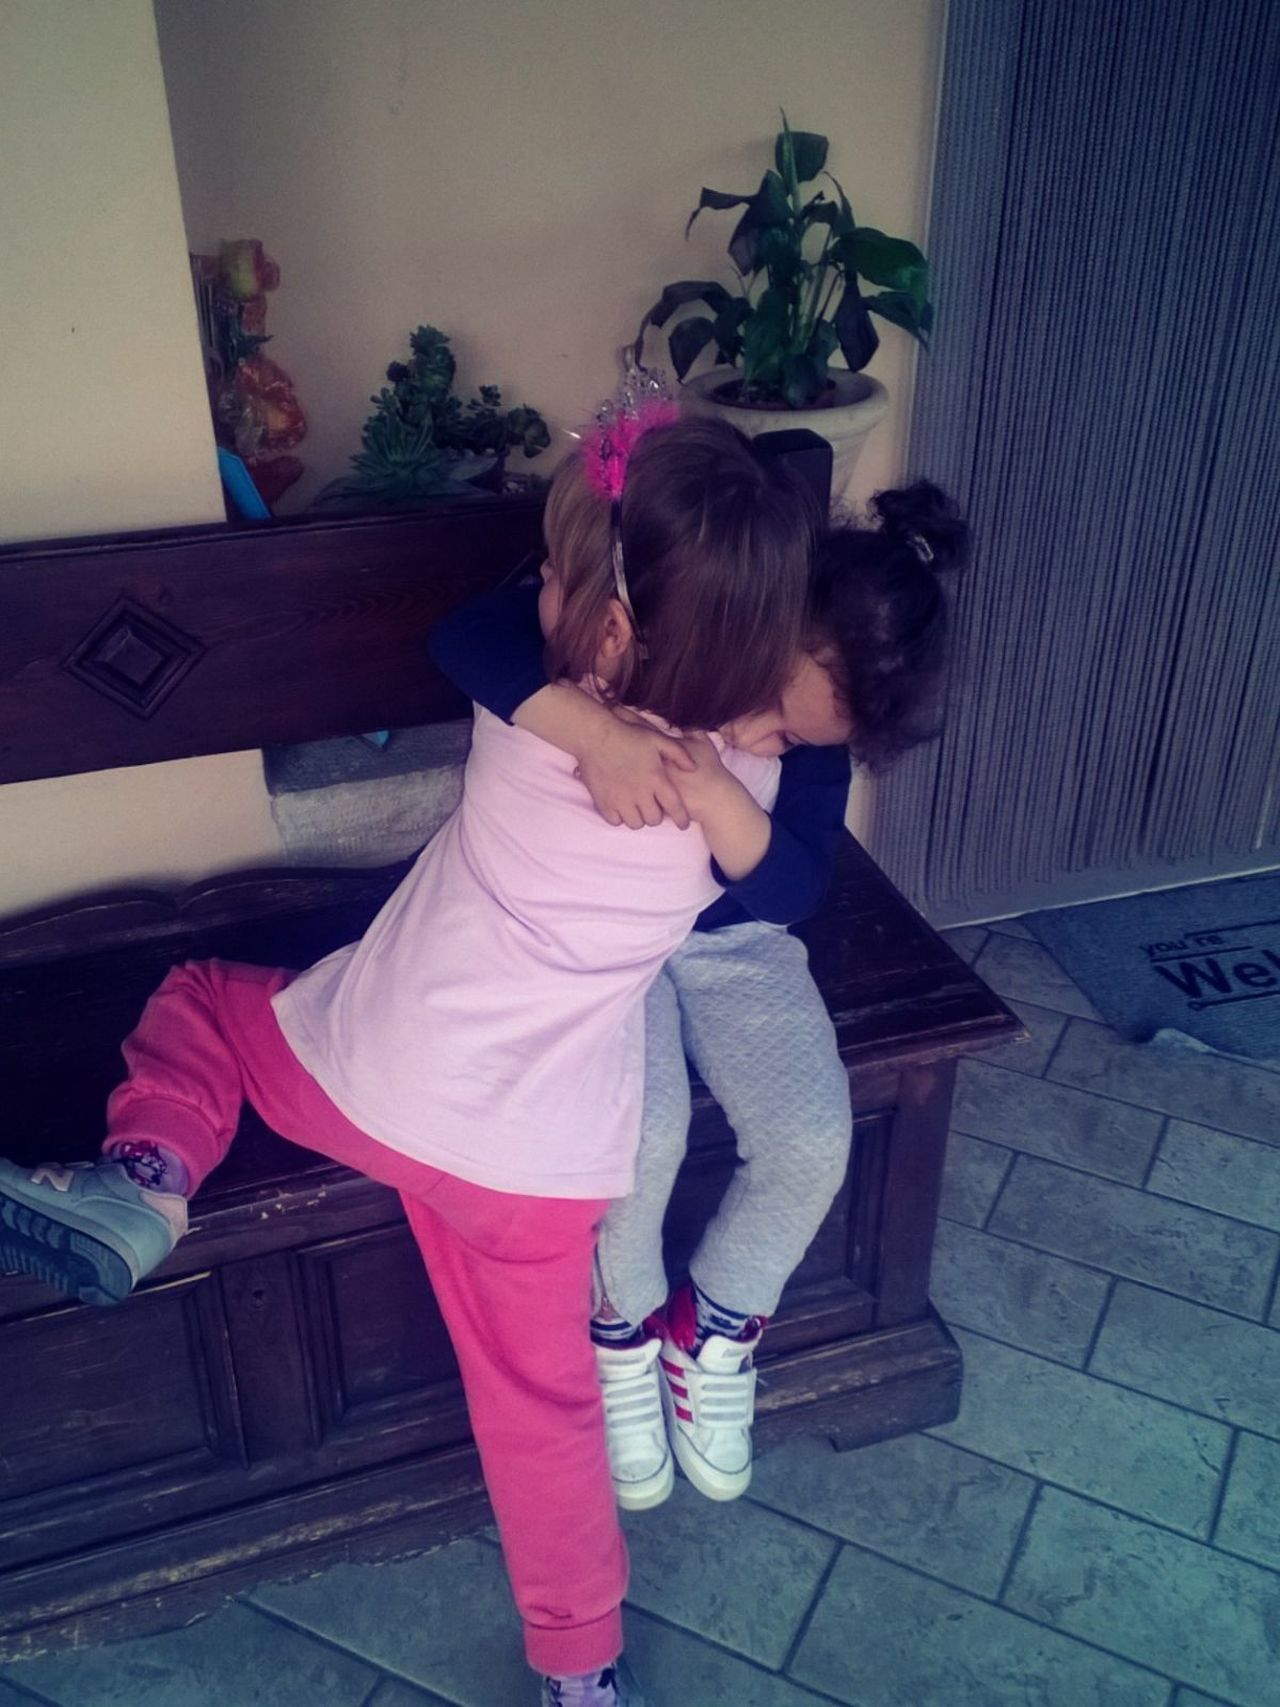 Cousins ❤ Girls MyGIRL Myladies Playing Hugs LoveChildren Love♥ Enjoying Life Thesetwo are Crazy Alwyas TogetherInseparable Neveralone What I Value That's Magic Makemehappy LoveThem  Joy